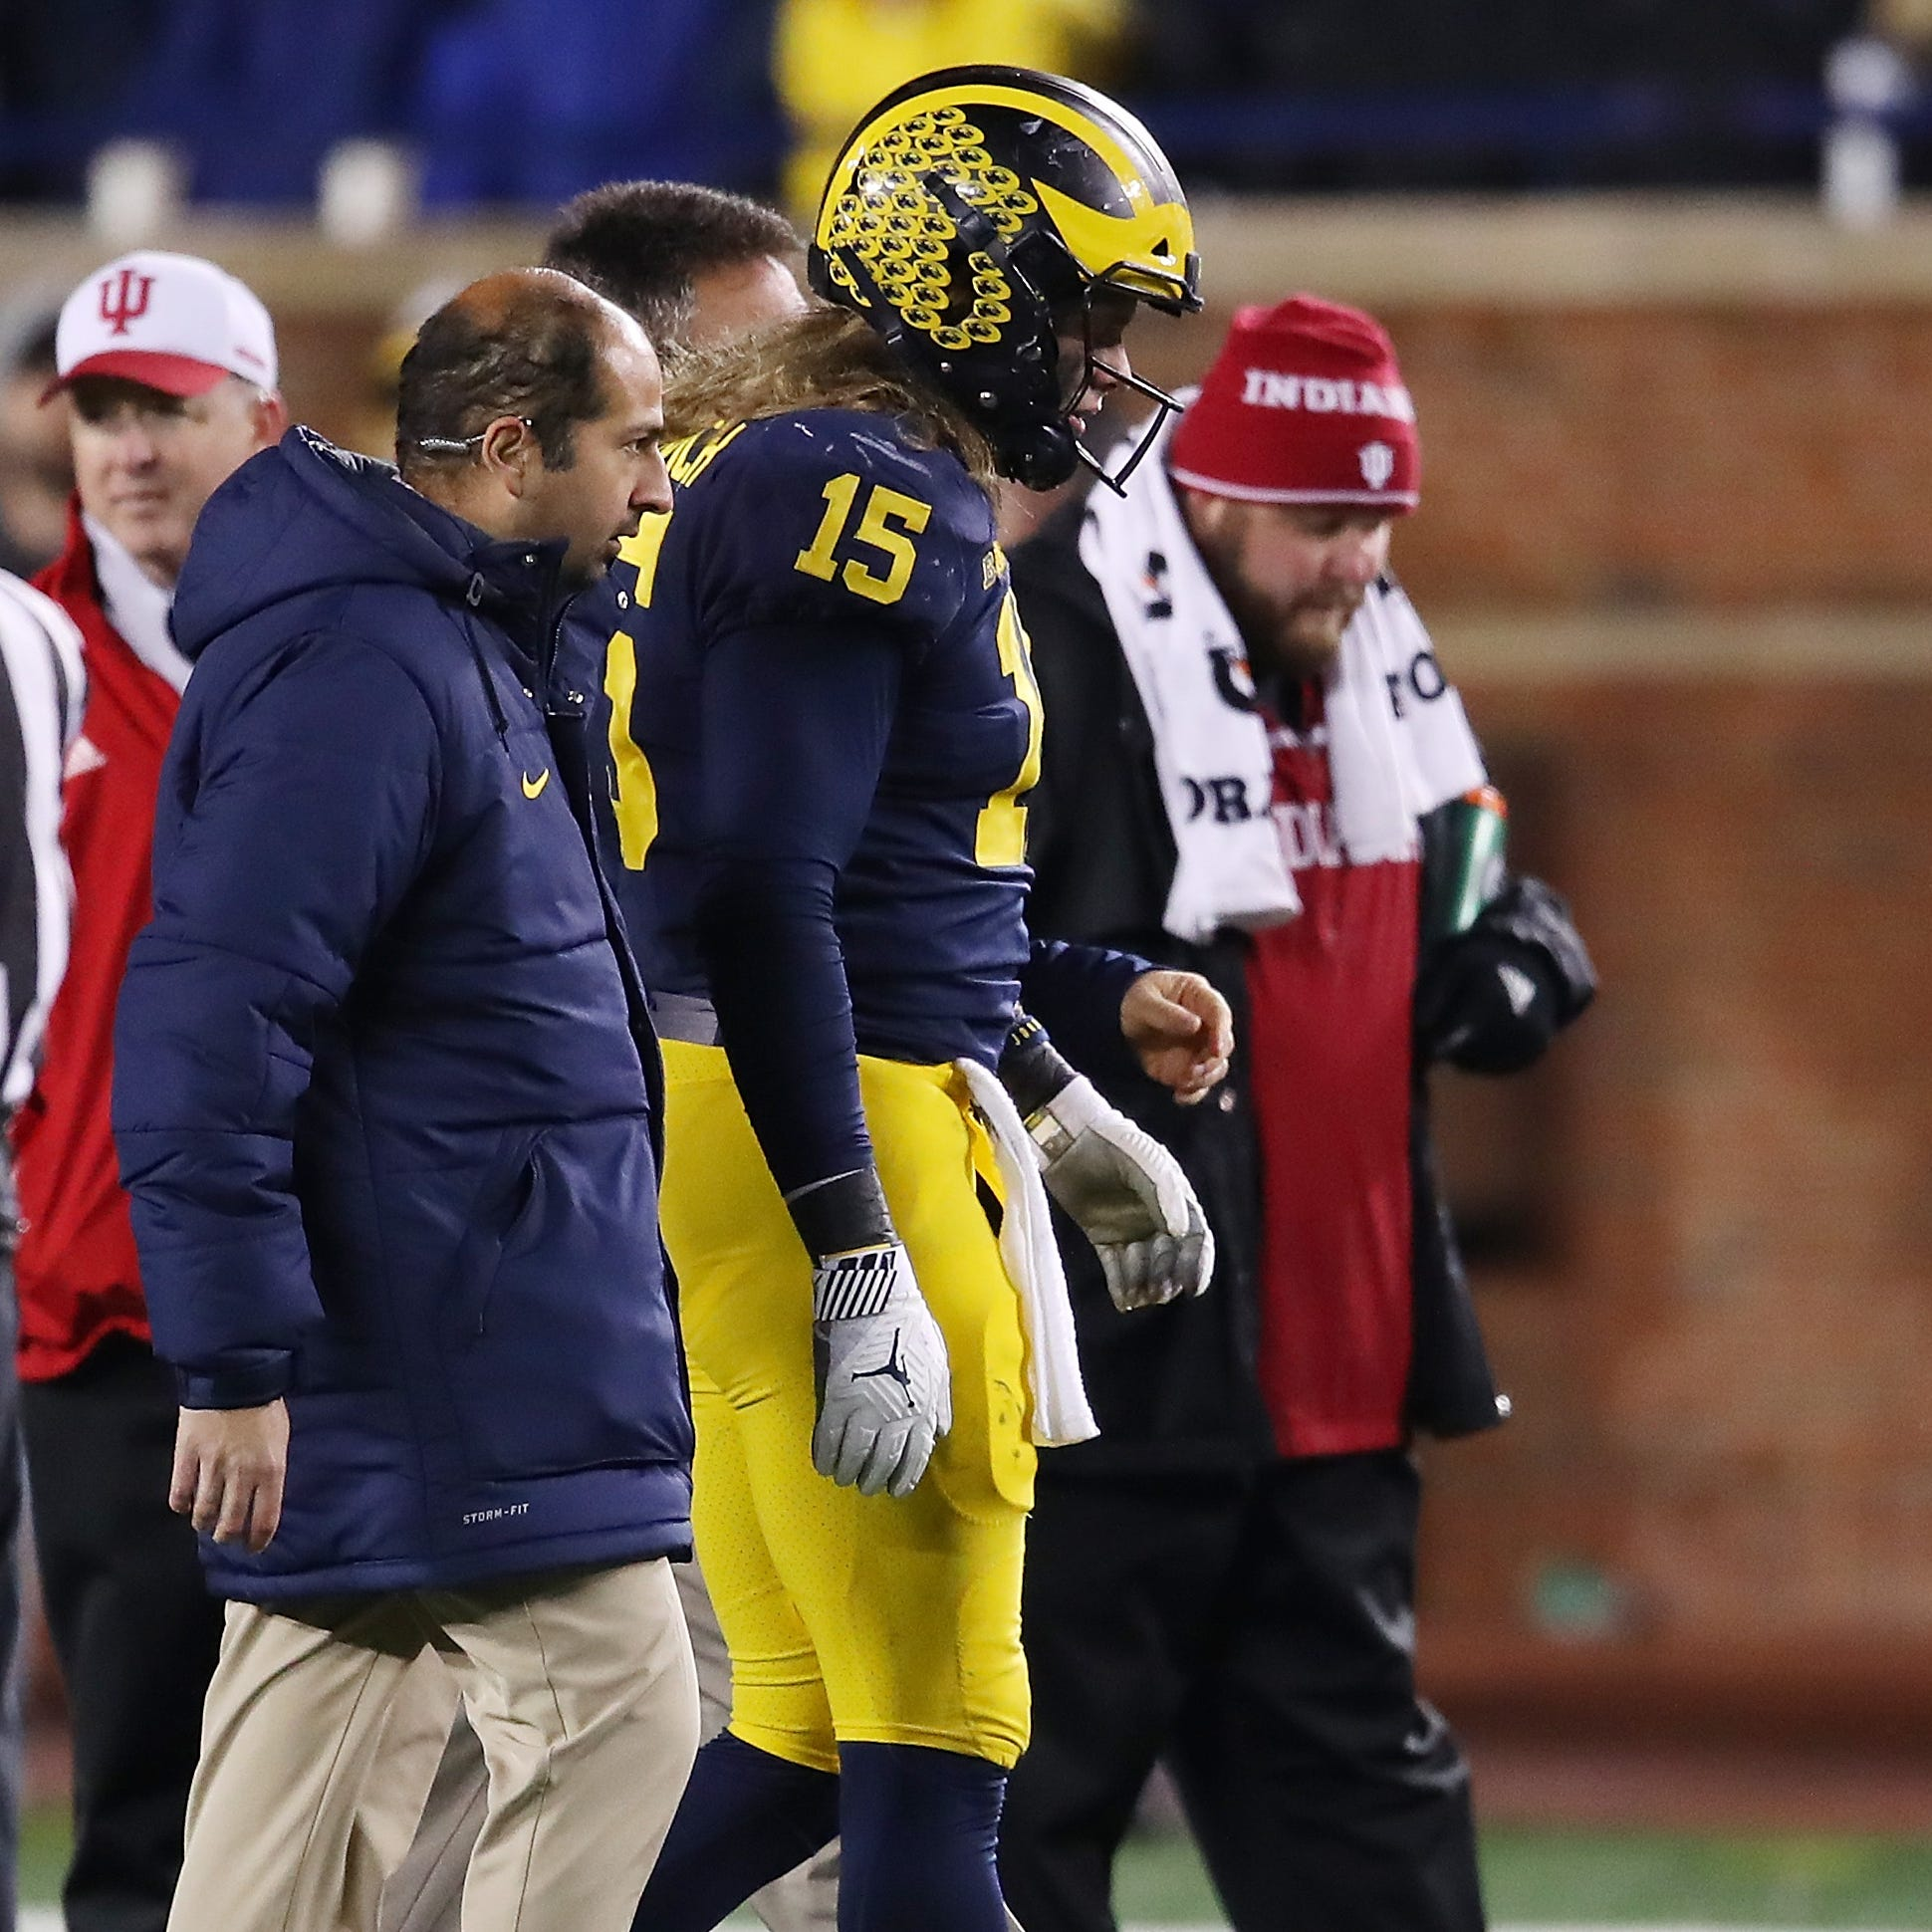 Michigan football players hopeful Chase Winovich plays at Ohio State